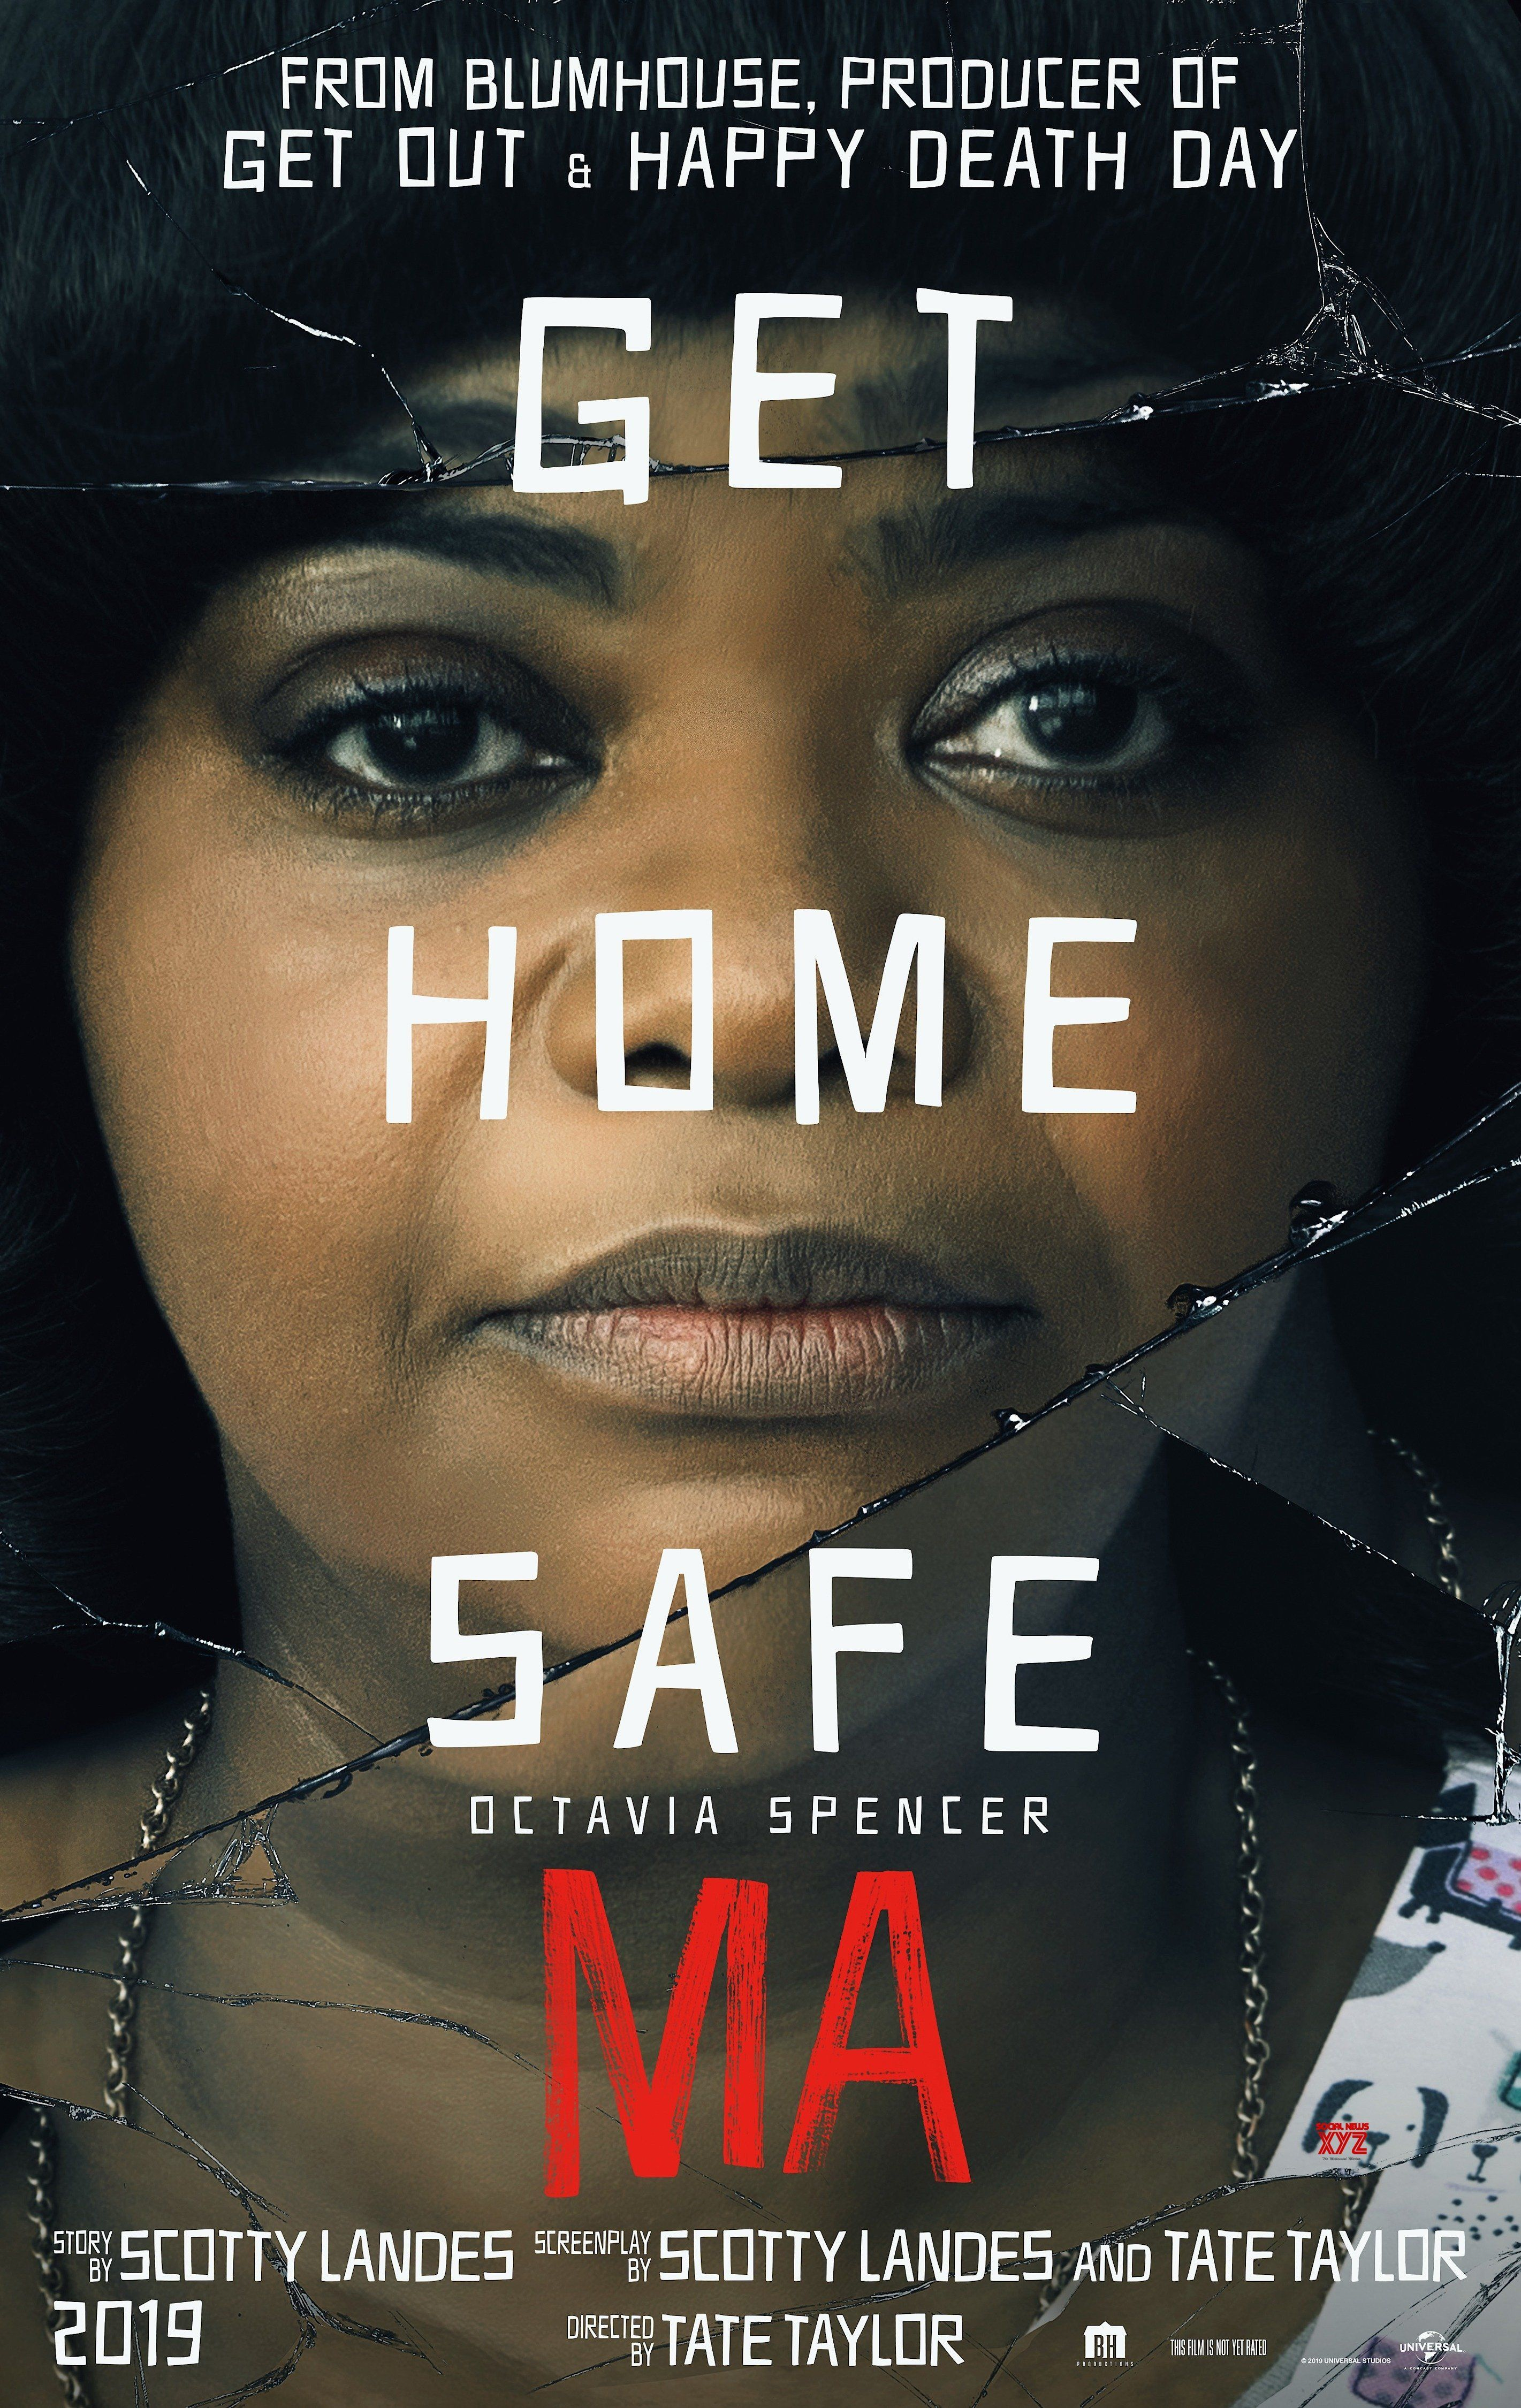 Ma Movie Hd Poster Octavia Spencer Free Movies Online Full Movies Online Free